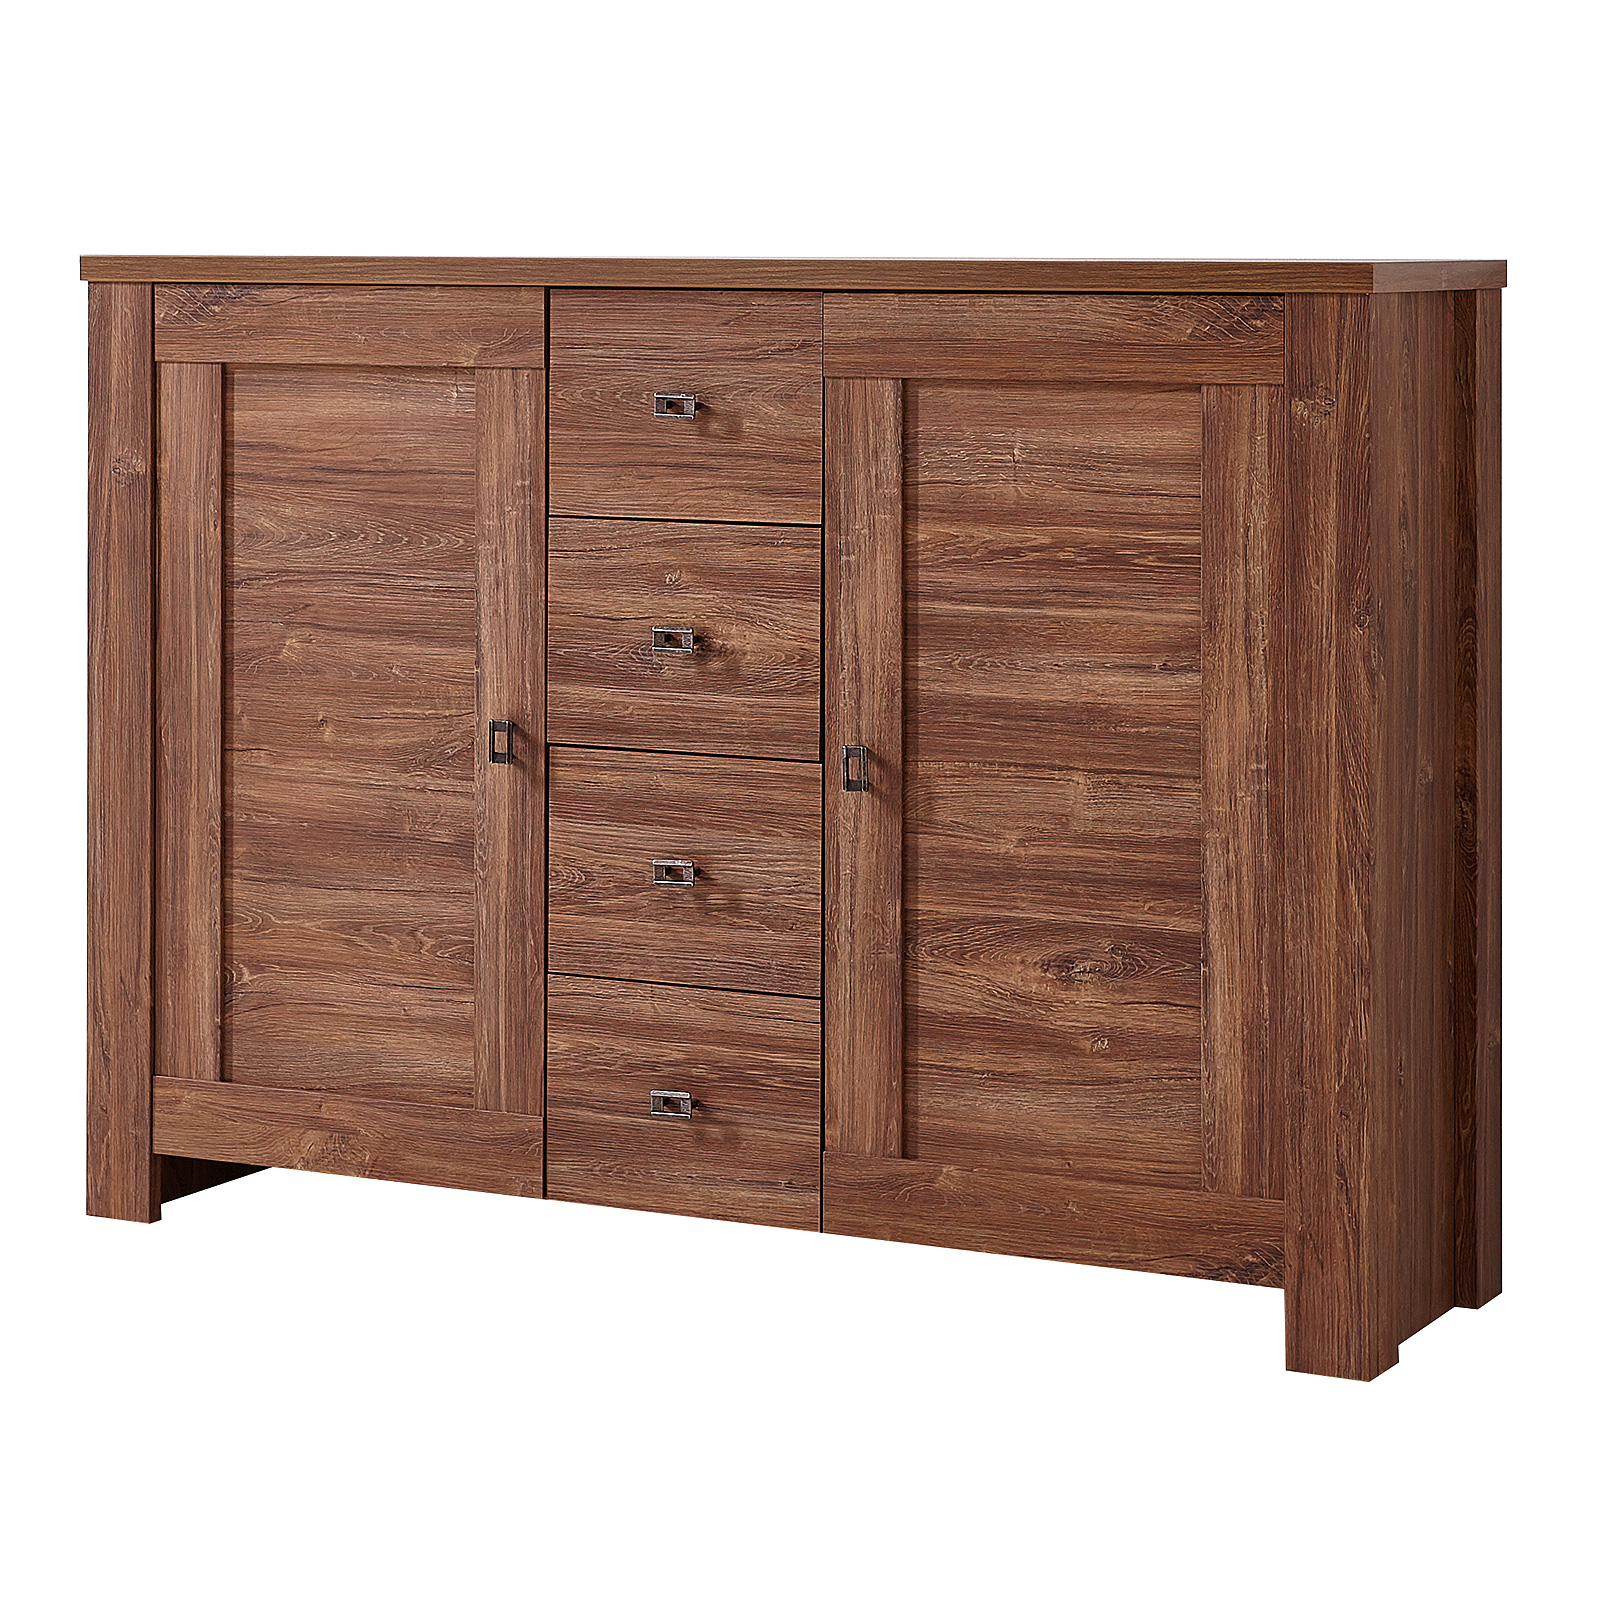 kommode 3 br ssel sideboard anrichte stauraumelement in akazie dunkel ebay. Black Bedroom Furniture Sets. Home Design Ideas